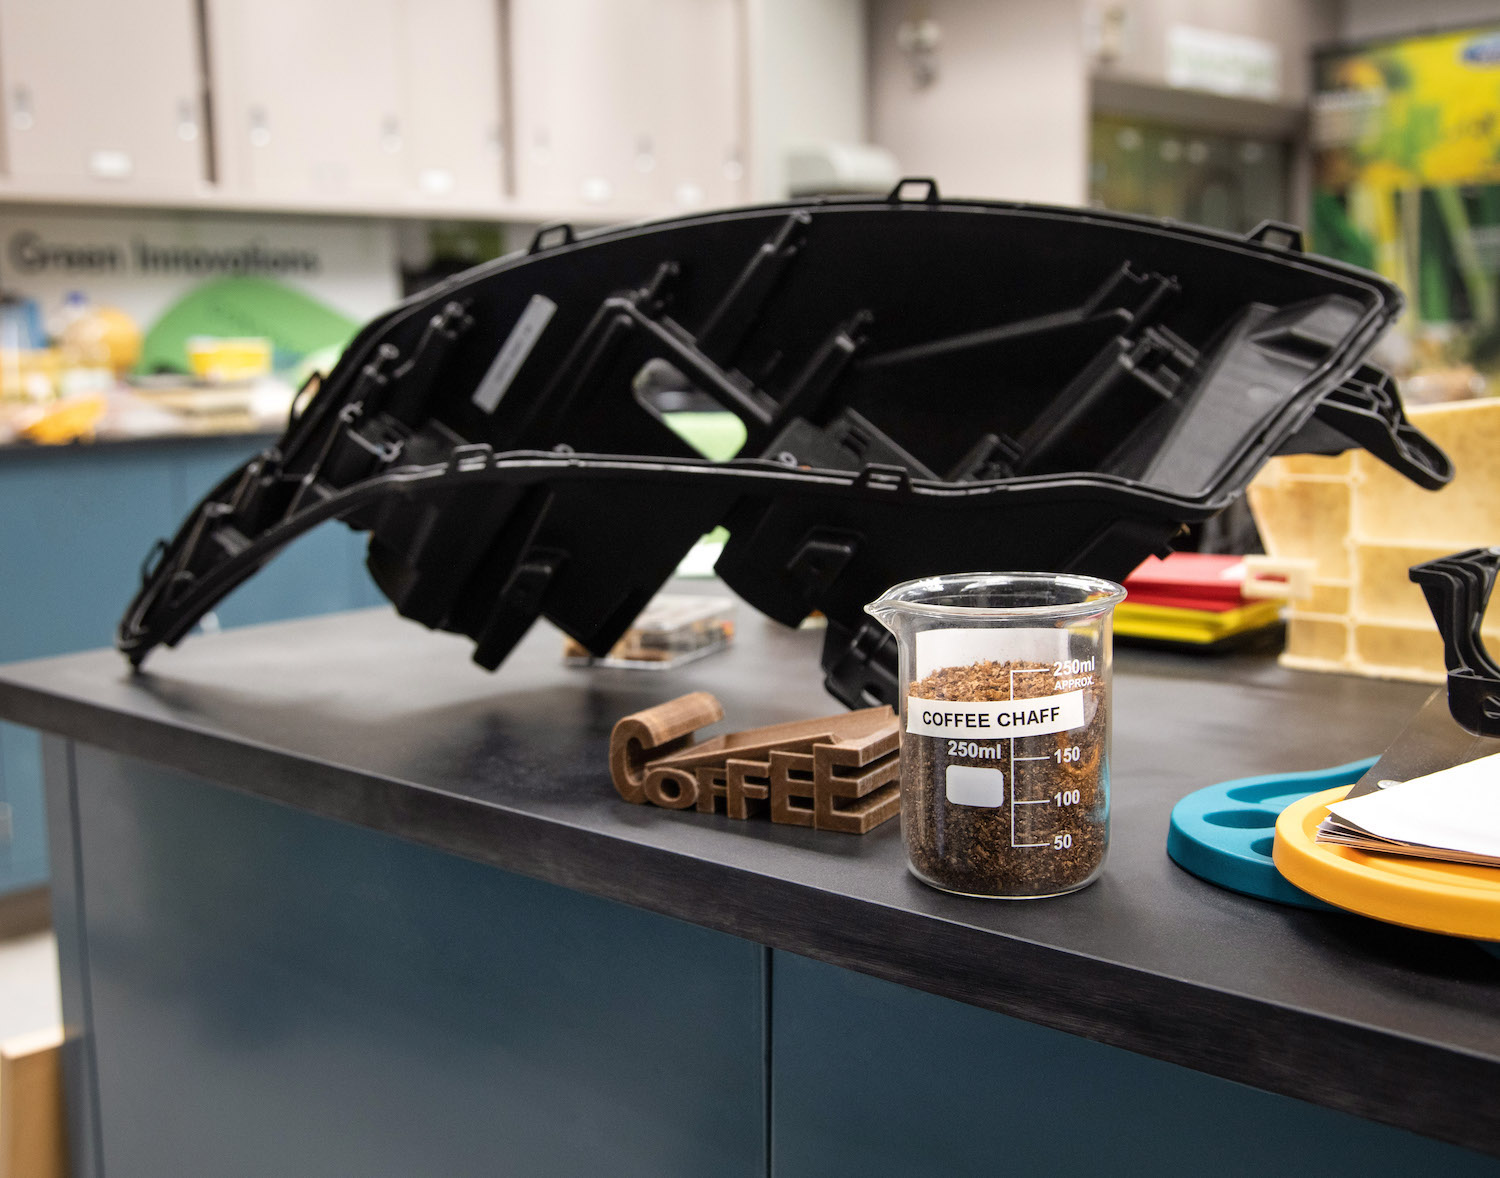 Ford's eco-friendly tie-up with McDonald's takes cars and coffee a bit too literally